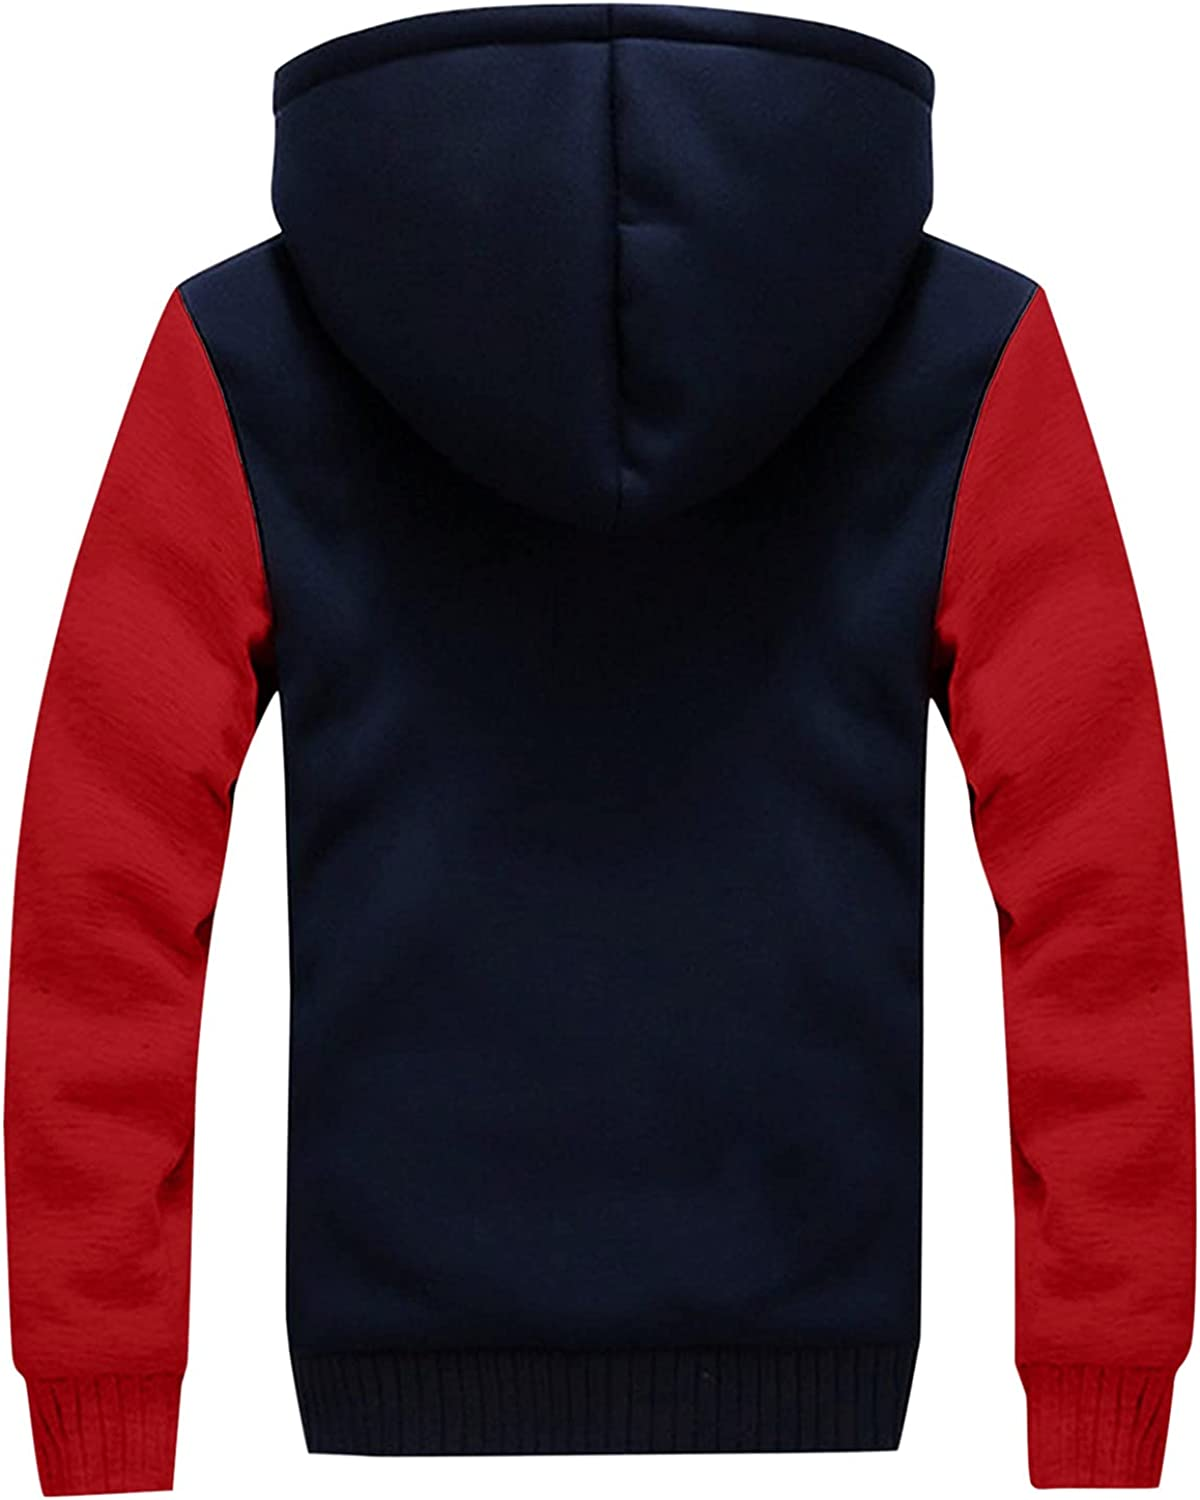 XXBR Fleece Jackets for Mens, 2021 Fall Winter Zipper Color Block Patchwork Plush Coat Casual Hooded Outerwear Hoodies